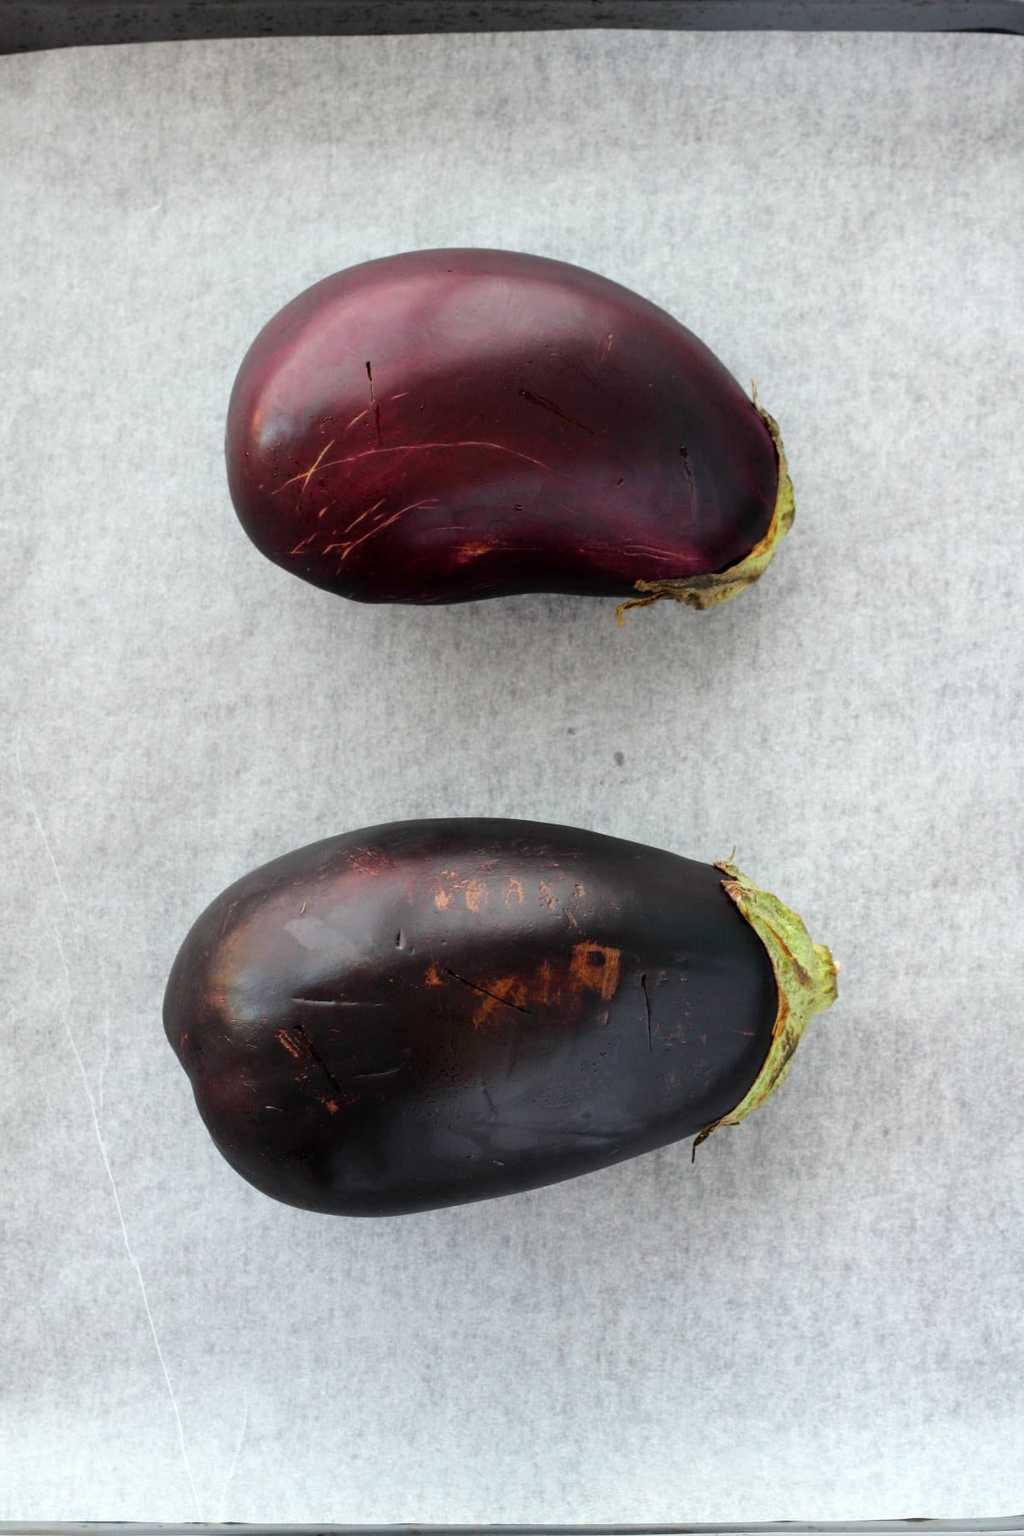 Two raw eggplants on a parchment lined baking tray, about to go into the oven.